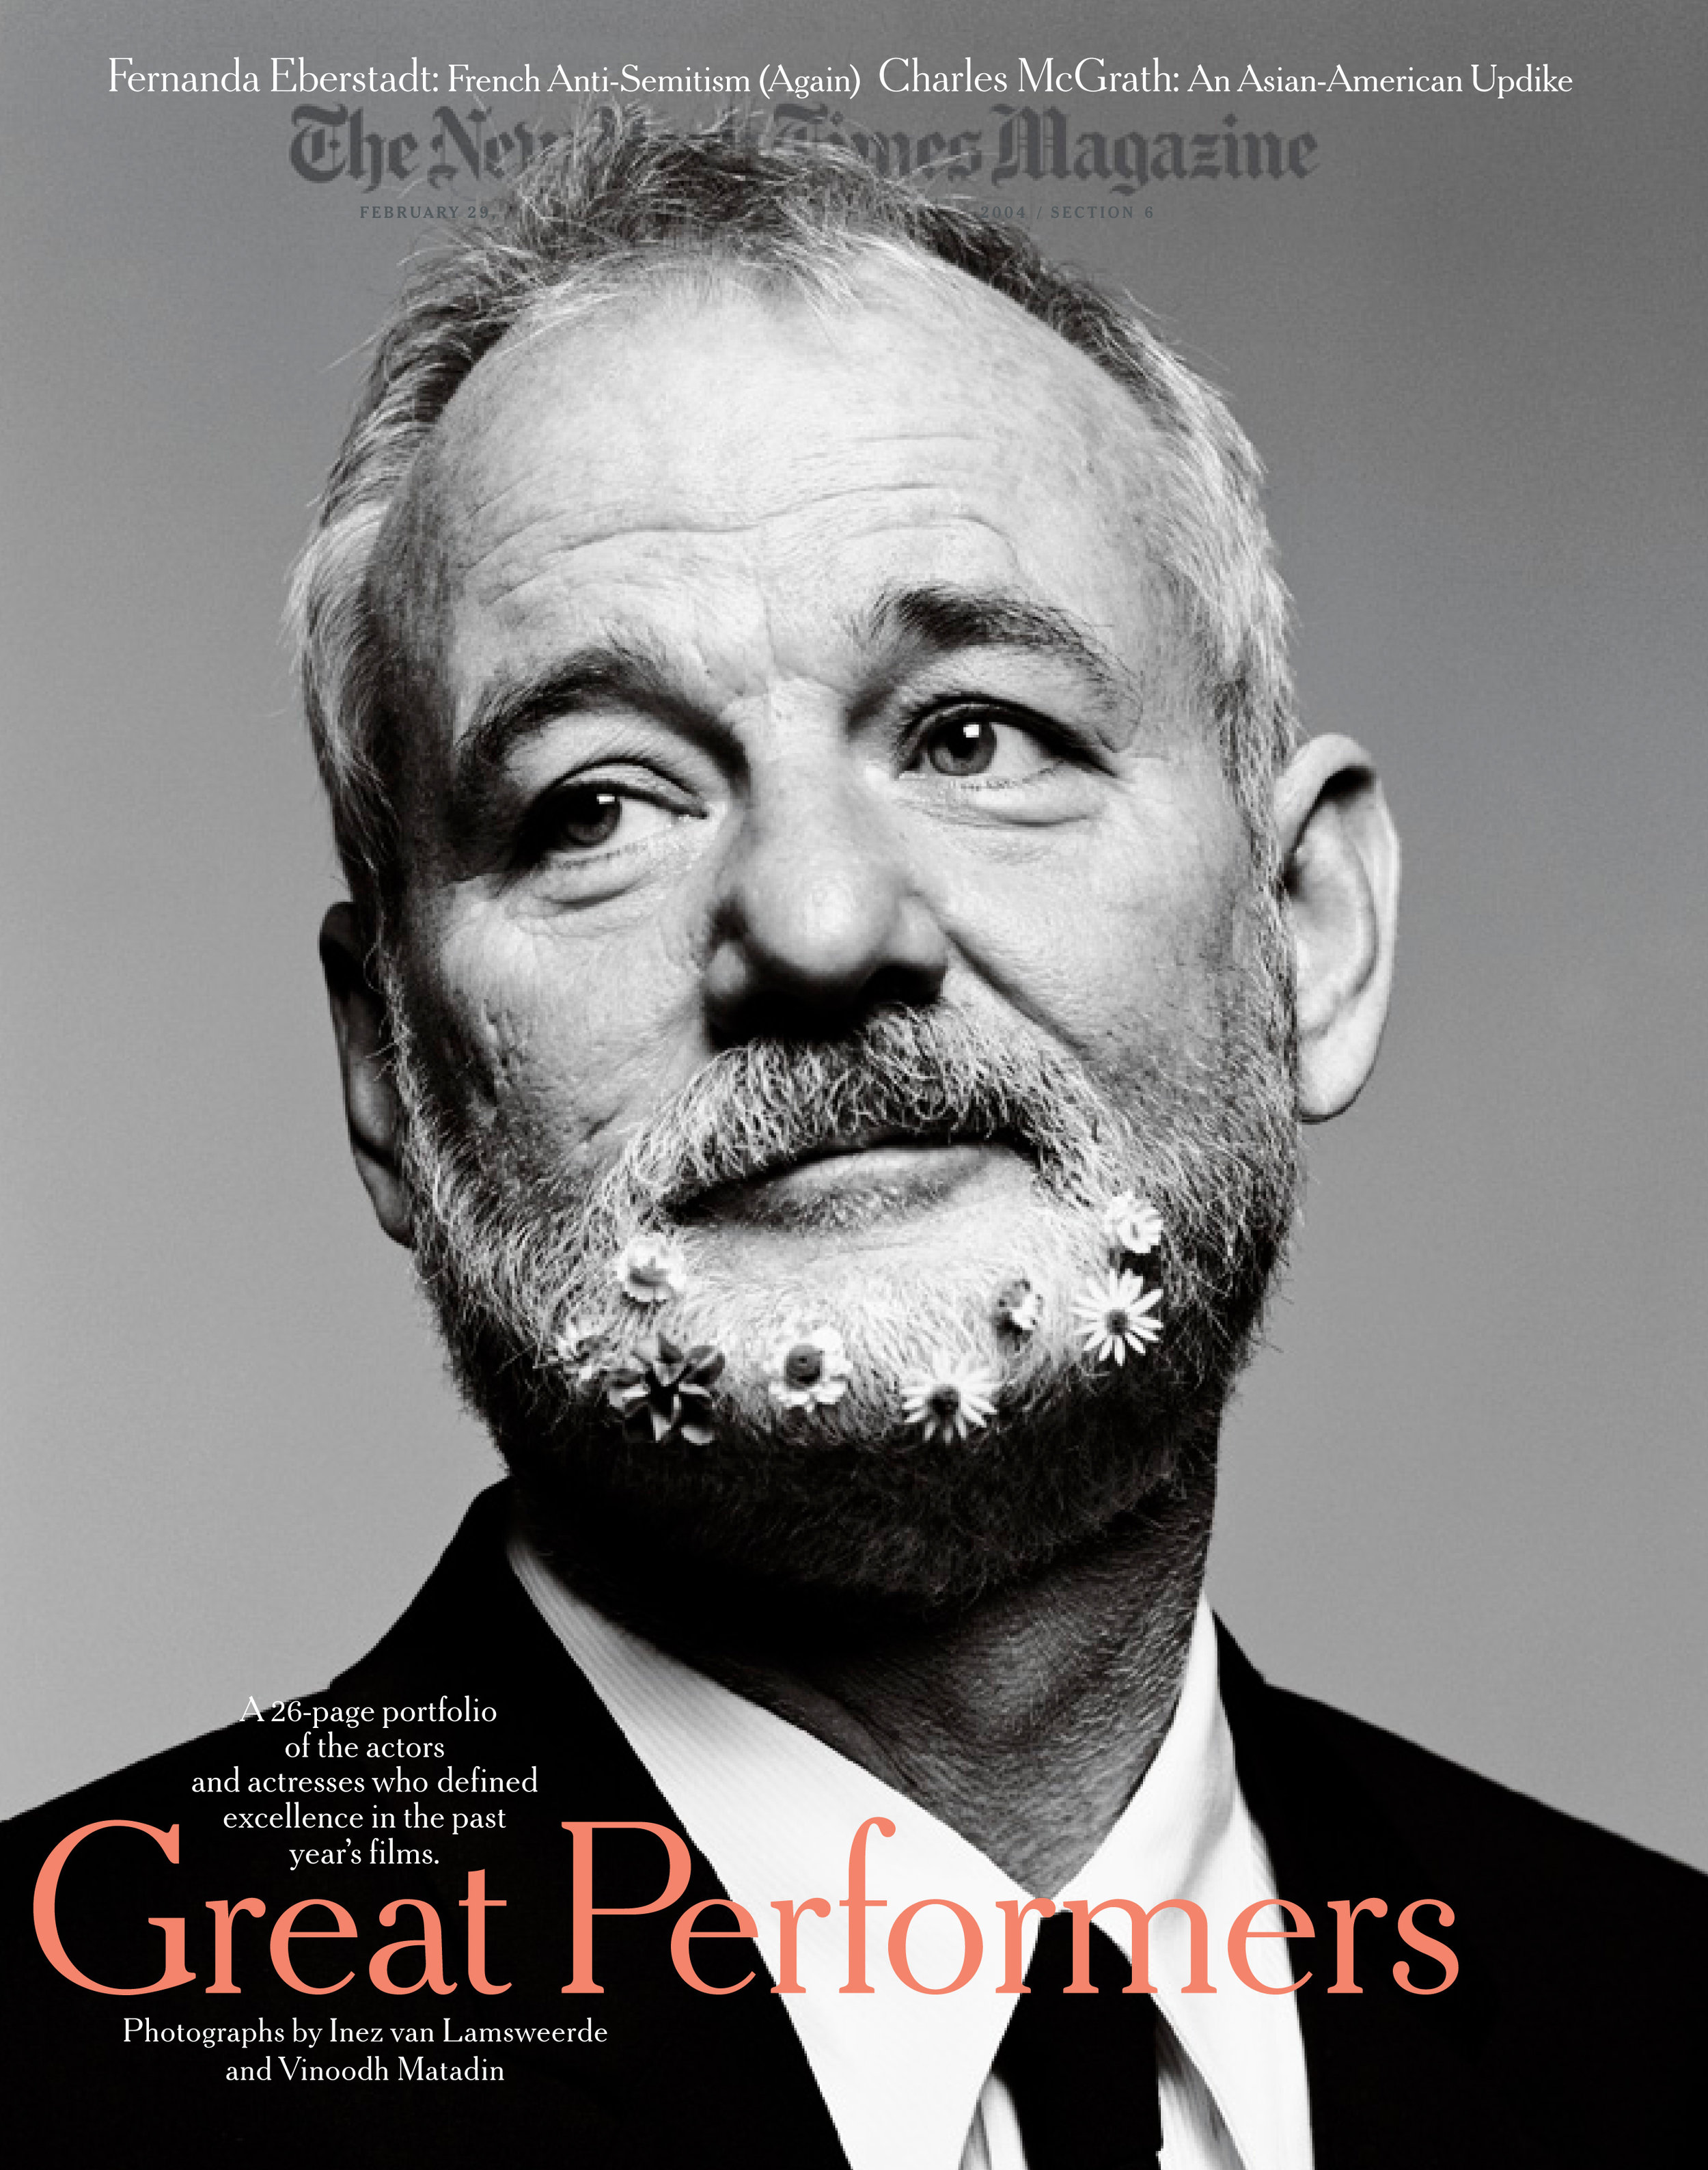 COVER.02.29.04.Oscars-Bill Murray-Cover.jpg